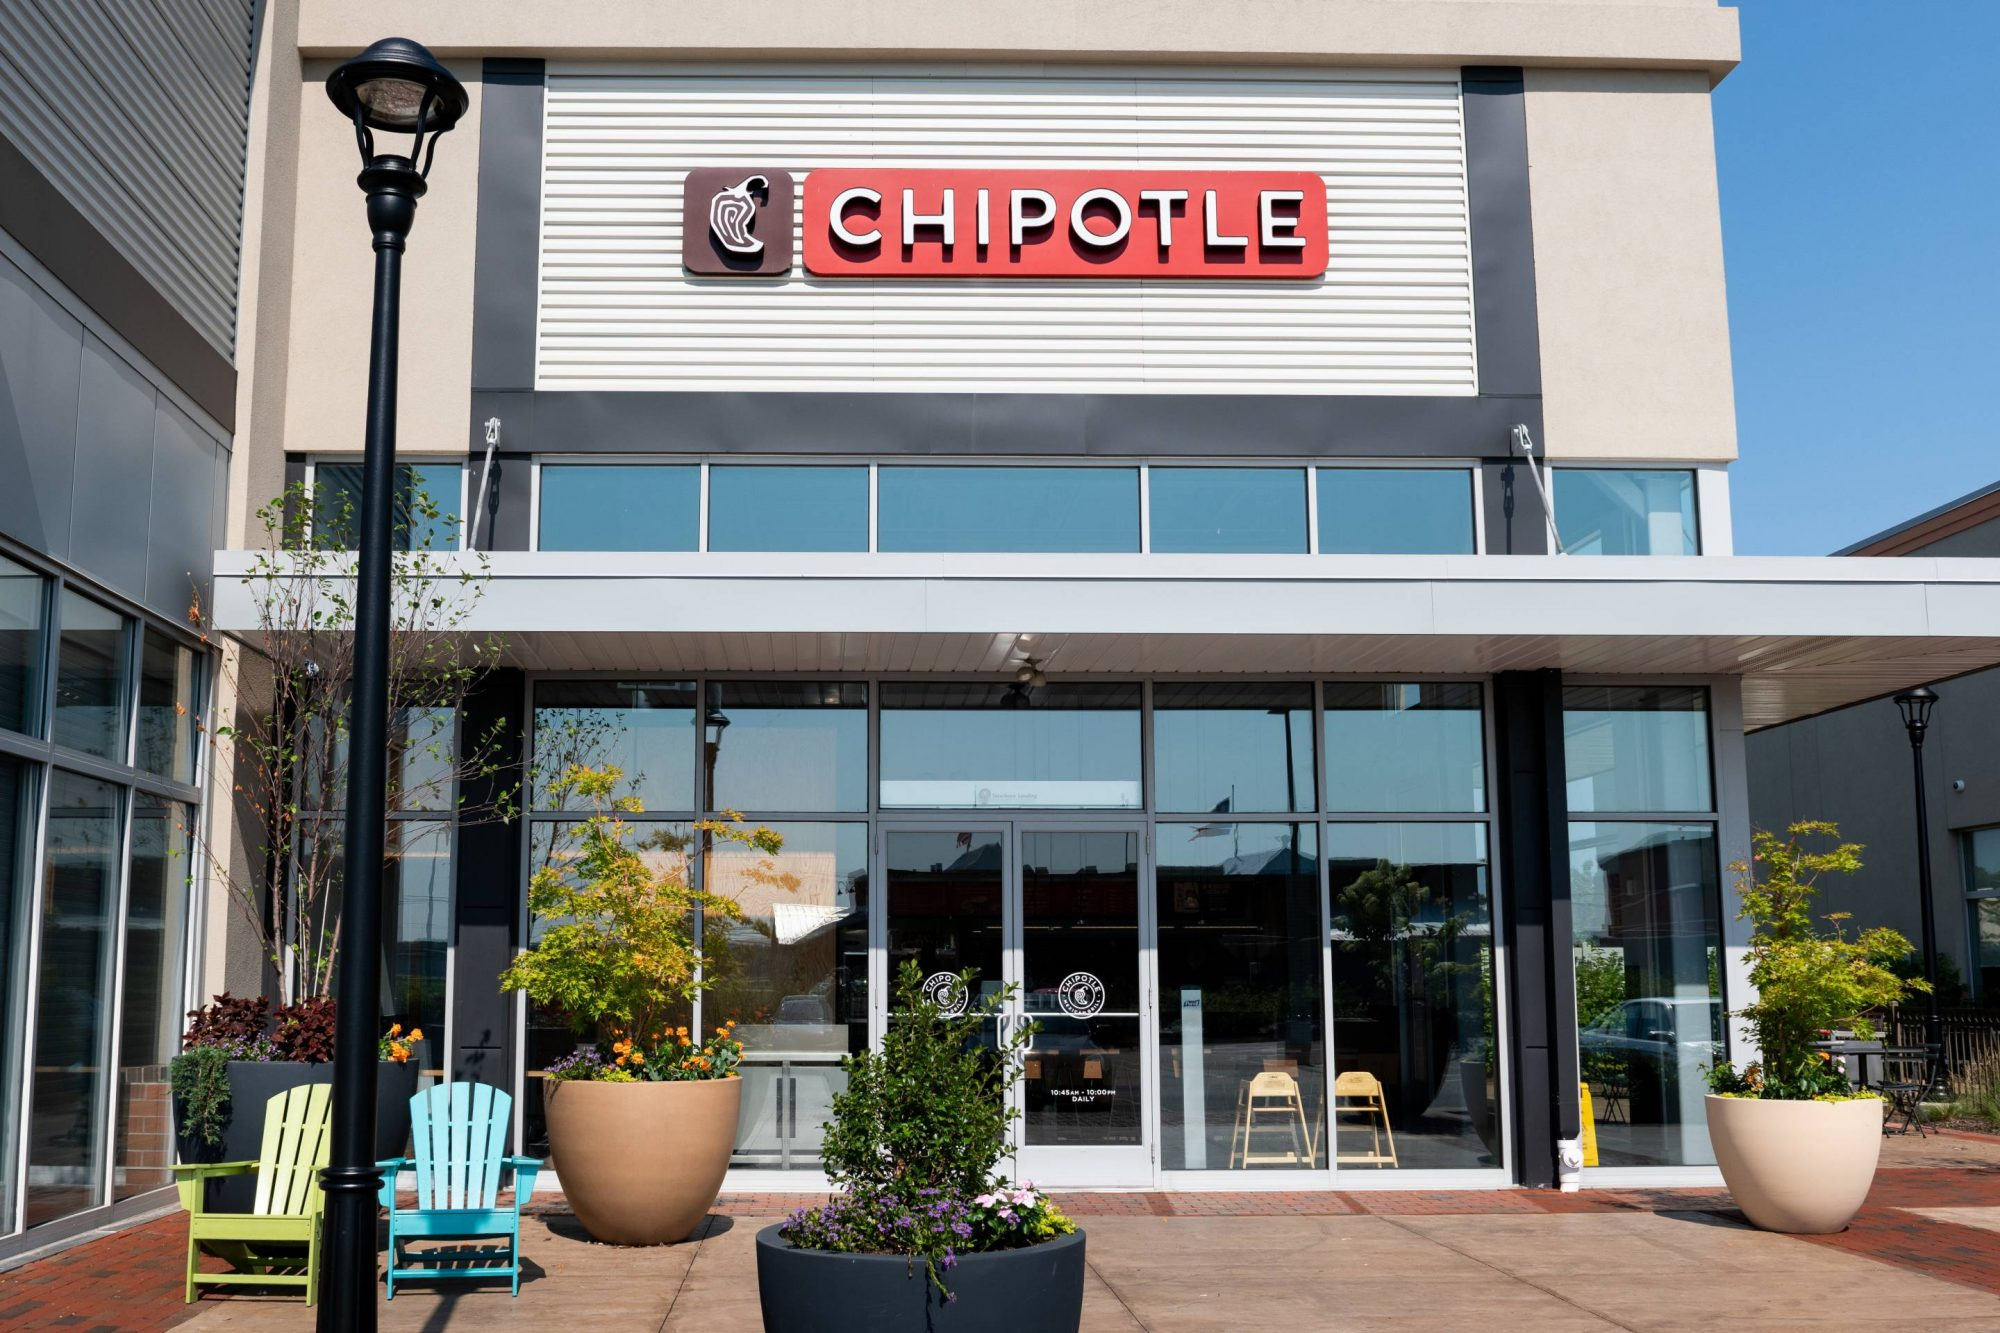 Chipotle Offers 'Lifestyle' Bowls for Keto, Paleo, Whole30, and Double Protein Diets